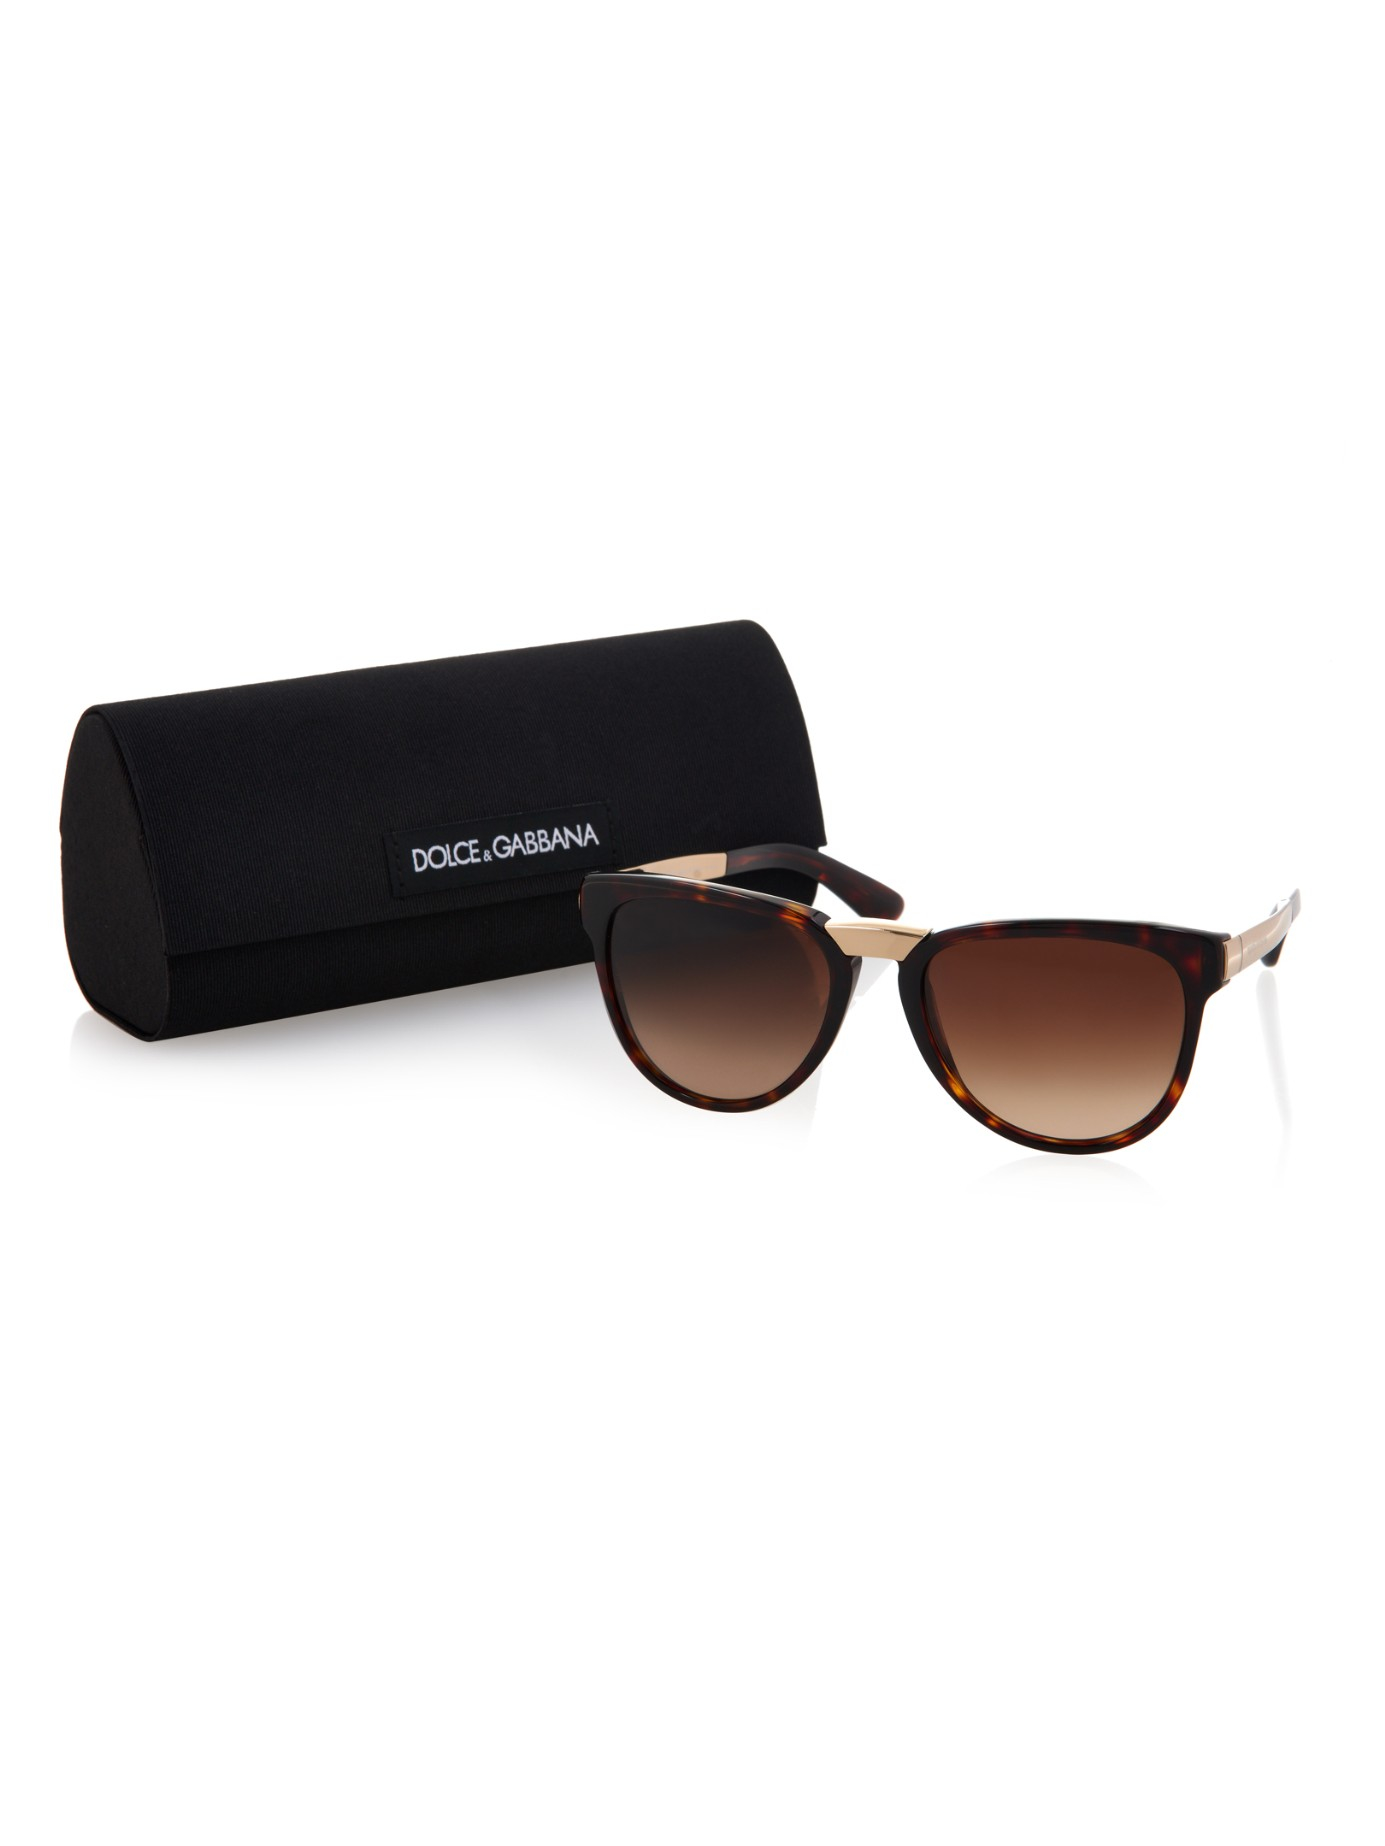 Dolce   gabbana Tortoiseshell And Metal Sunglasses in ... Sunglasses  Dolce Gabbana DG 4274 ... 7600b49d68c9